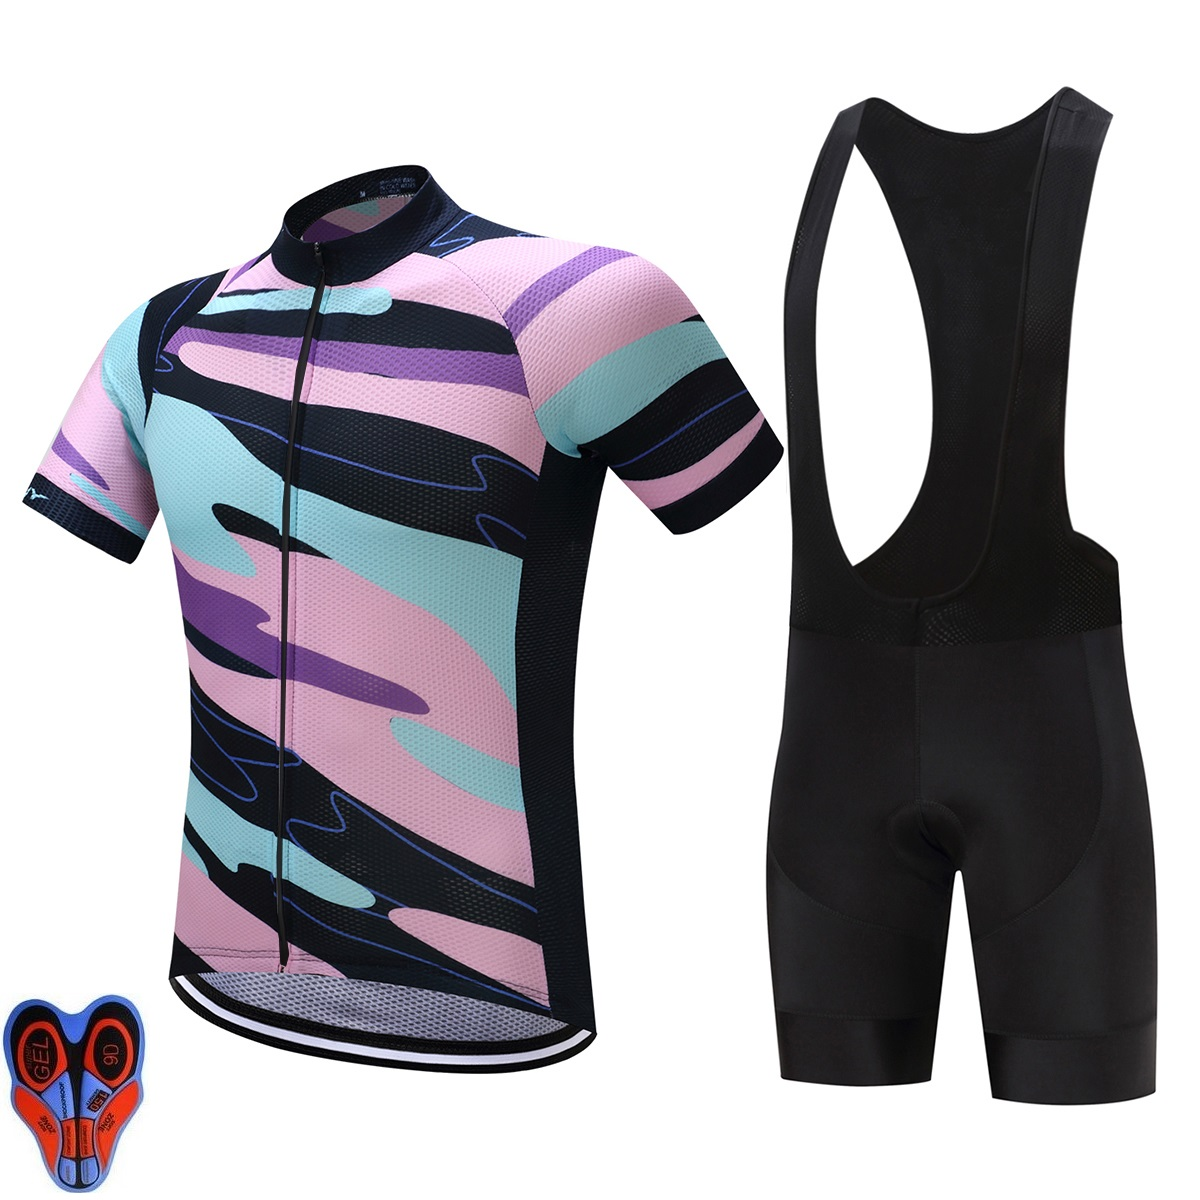 f6d065548 2017 bora cycling Jerseys bike maillot ciclismo cycling clothing quick dry bicycle  clothes sportwear Quick Dry jersey+9D gel-in Cycling Sets from Sports ...